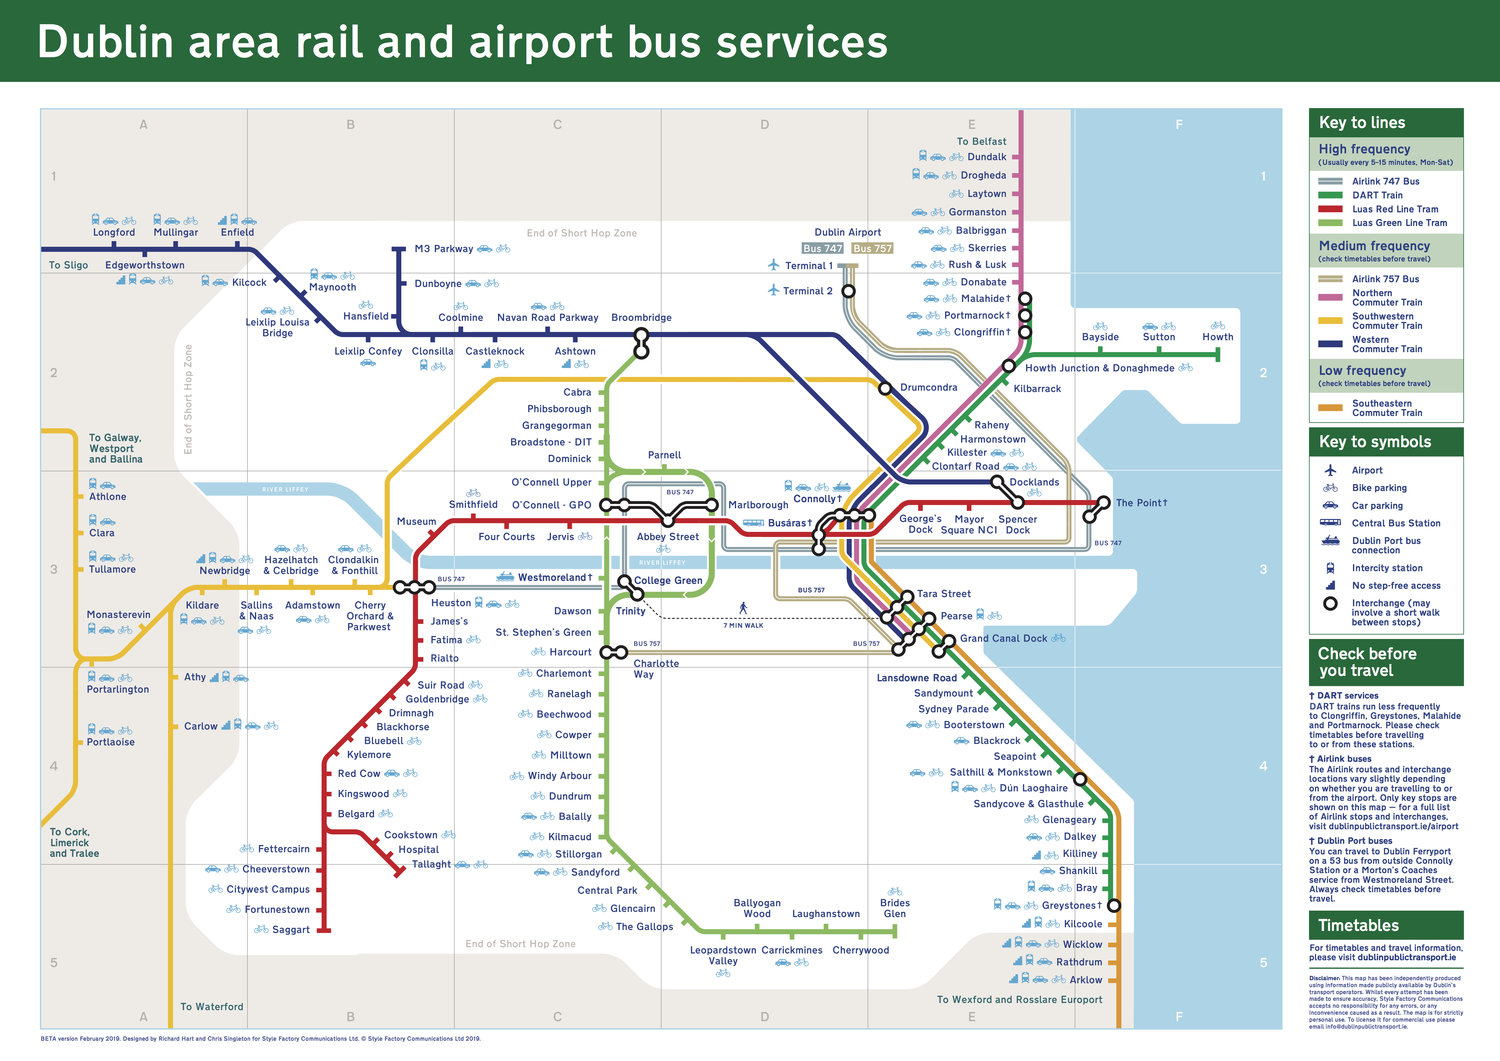 Dublin Public Transport - Maps, Timetables and Information